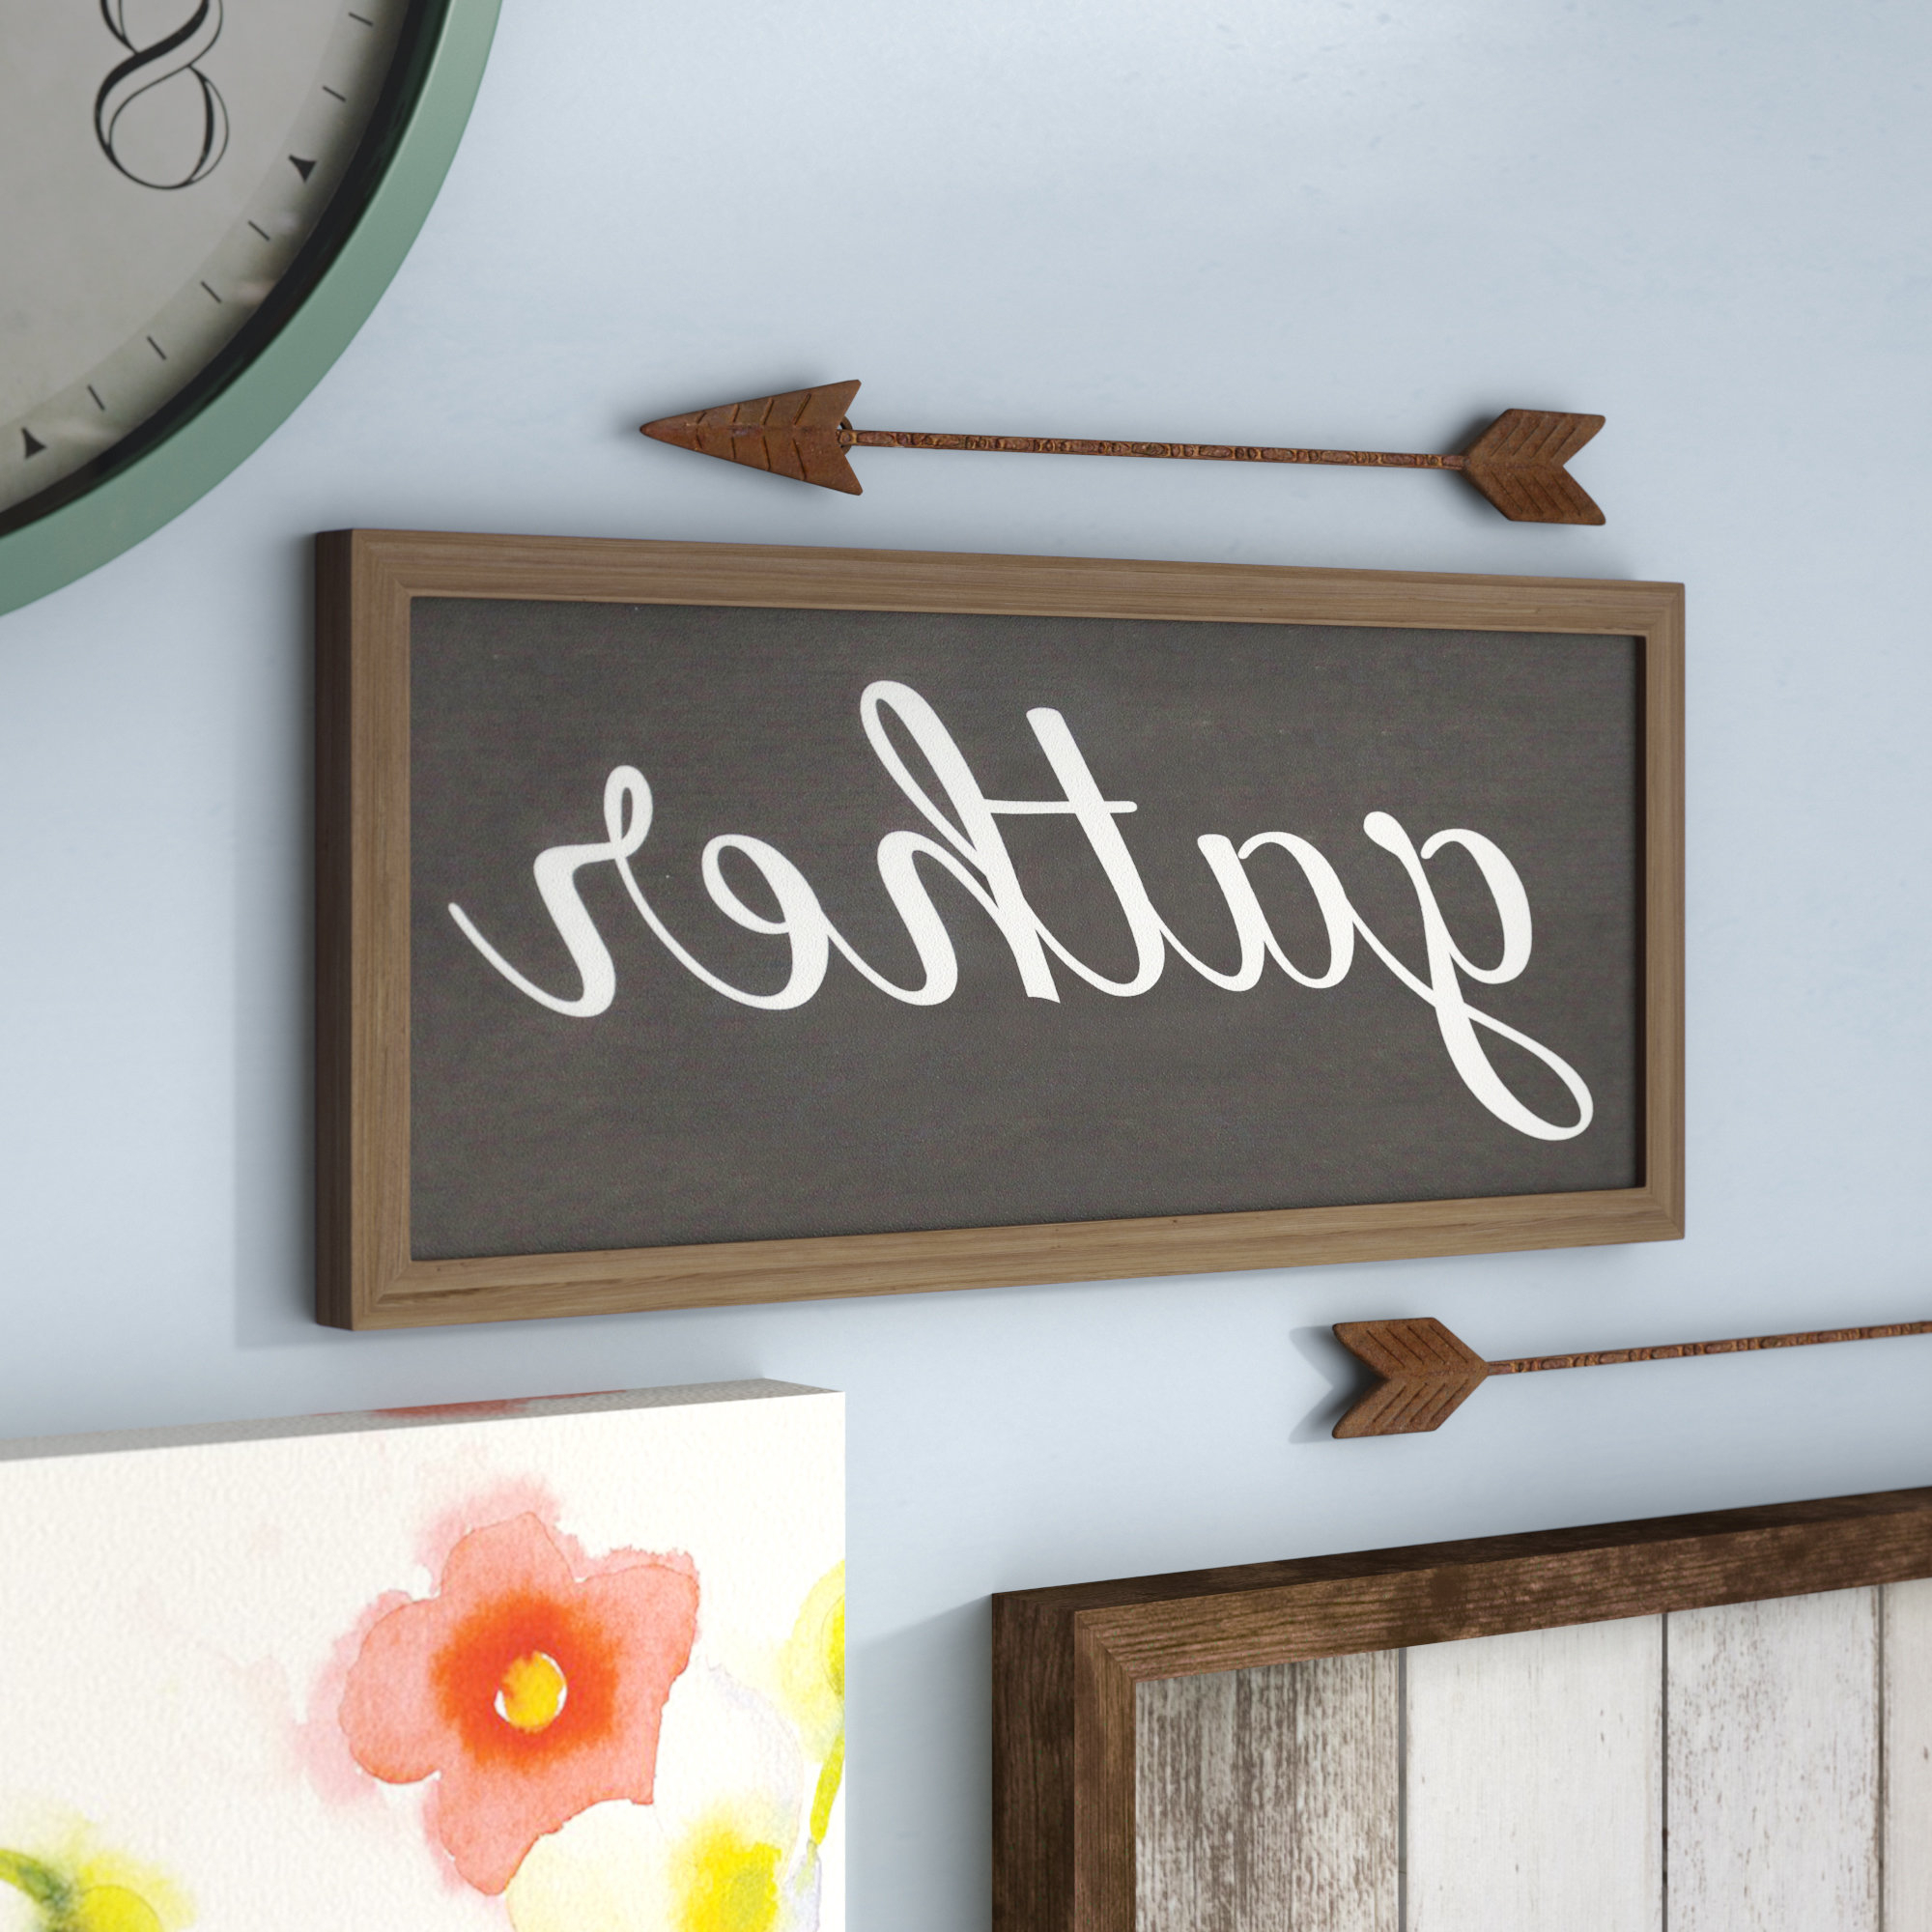 Well Liked Choose Happiness 3D Cursive Metal Wall Decor Intended For Laurel Foundry Modern Farmhouse Gather Galvanized Metal Wall Décor (Gallery 13 of 20)